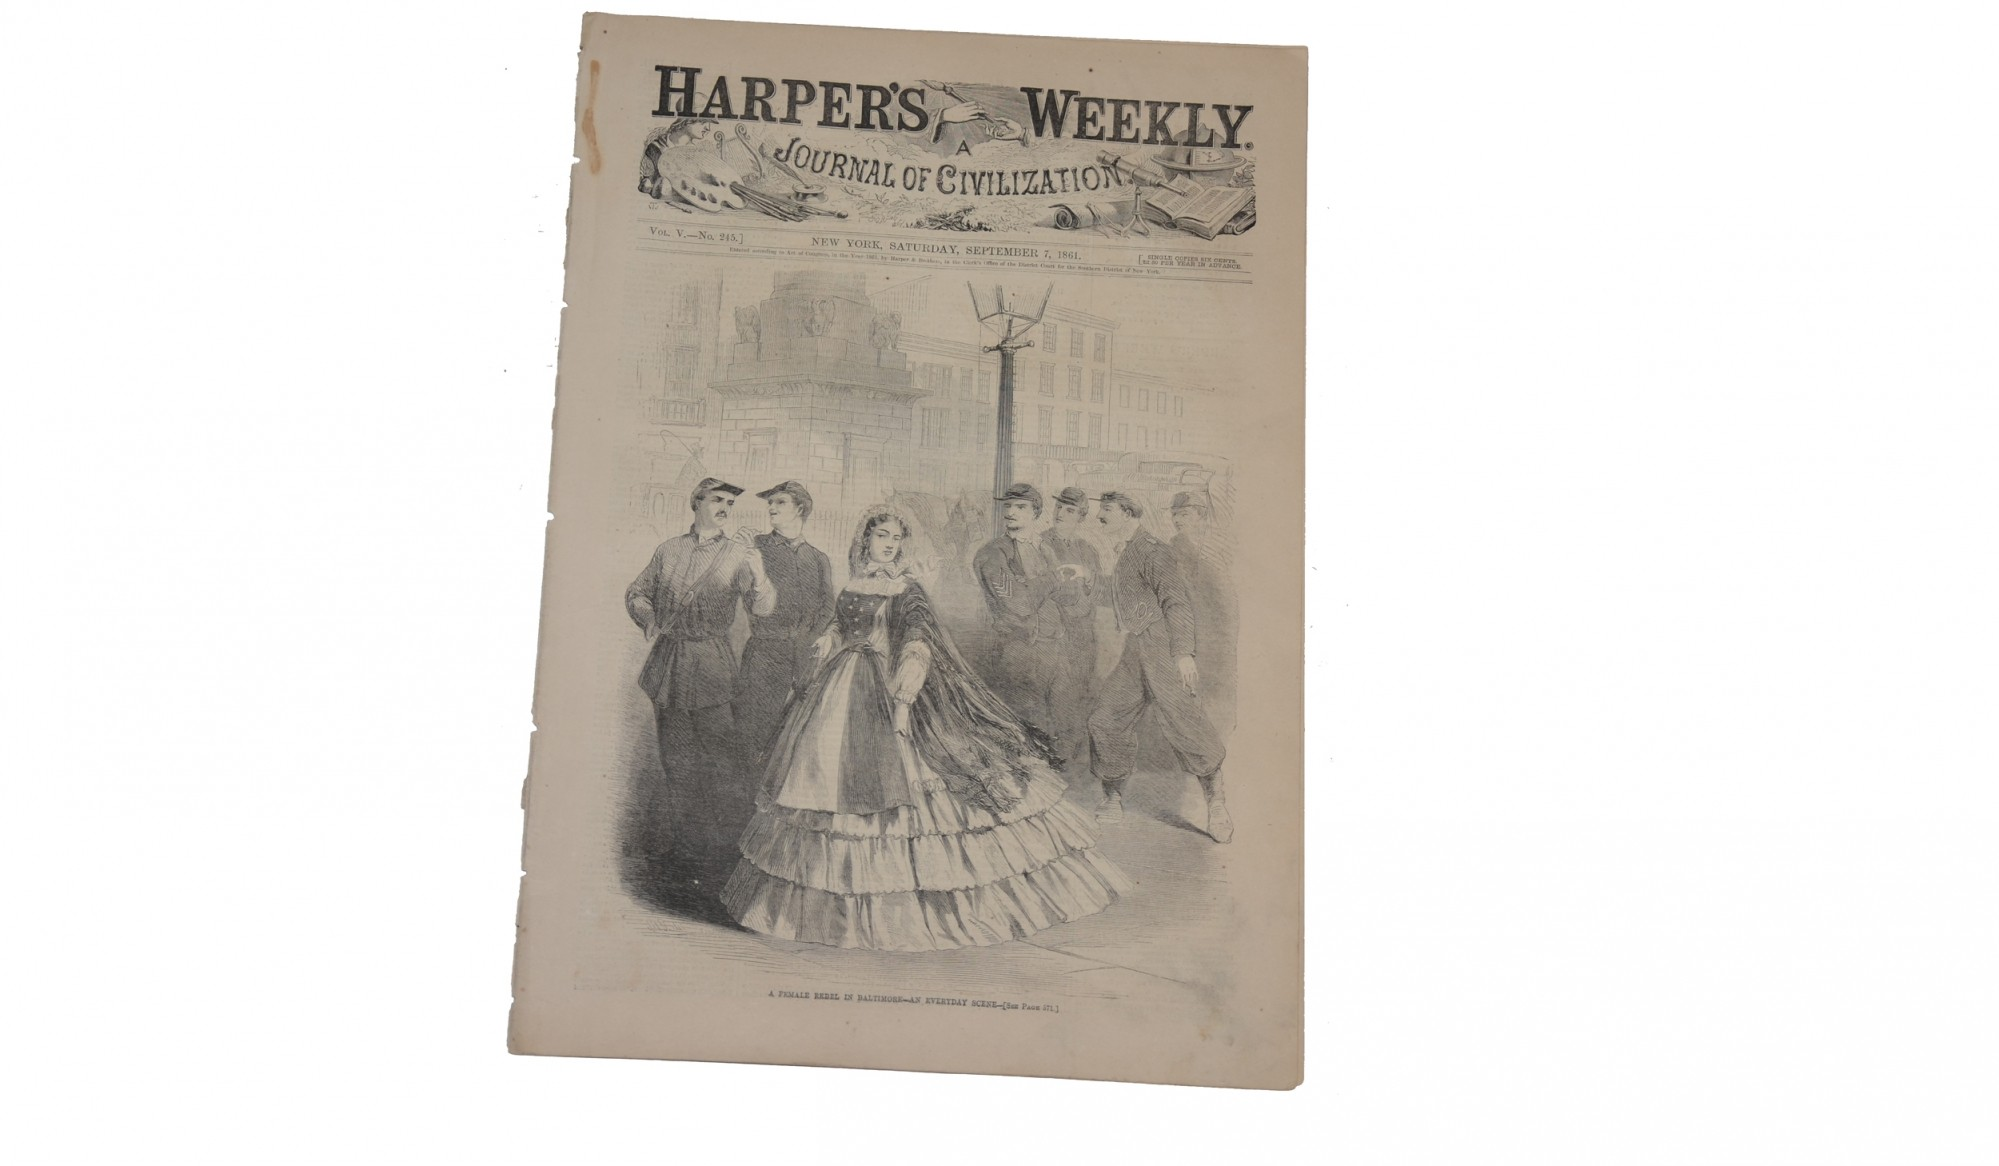 HARPER'S WEEKLY, NEW YORK, SEPTEMBER 7, 1861 – REBEL FEMALE IN BALTIMORE